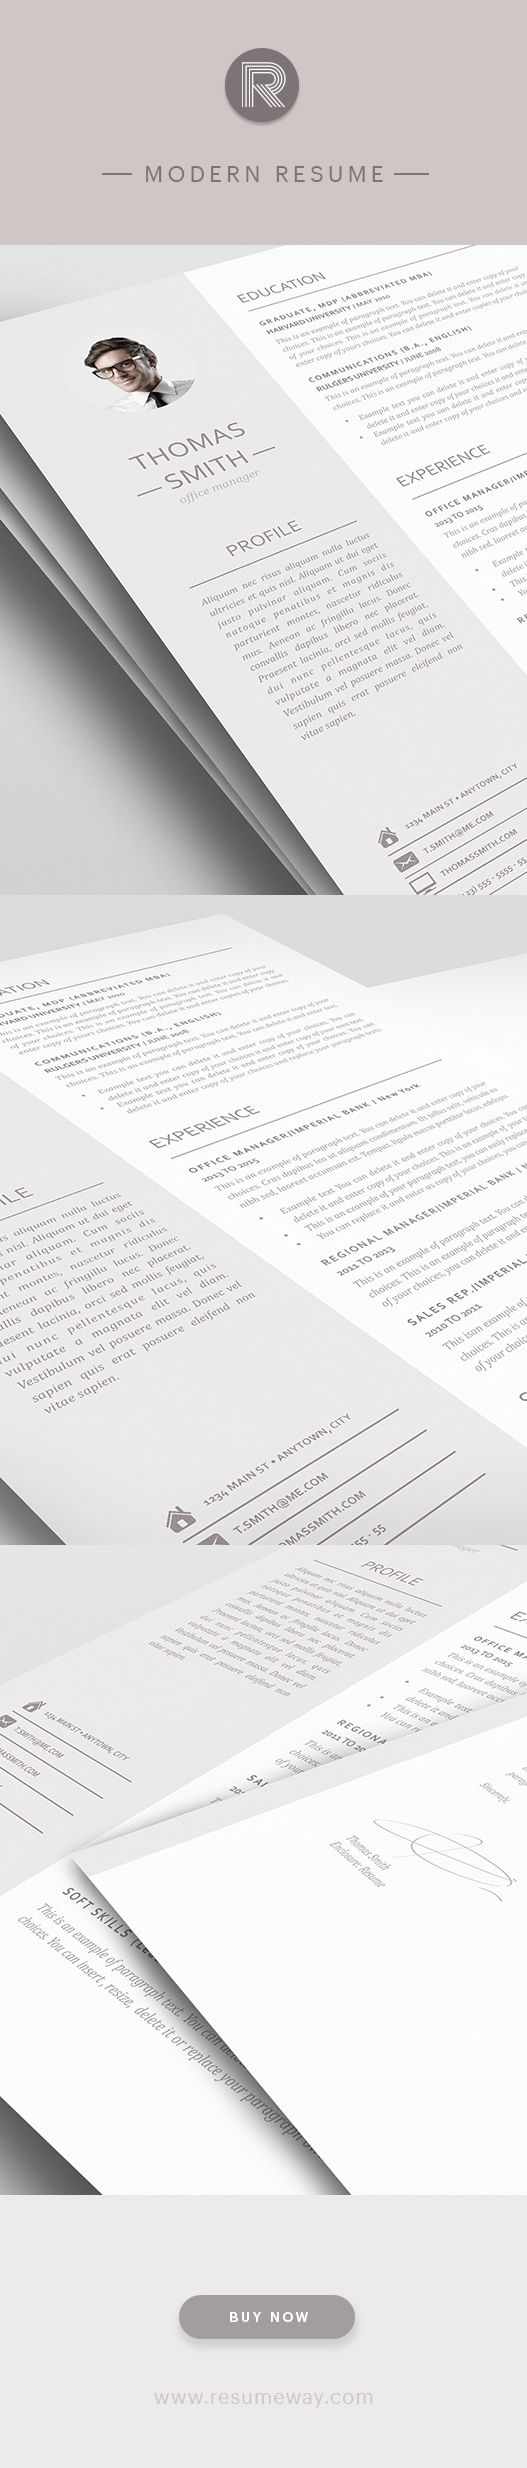 best images about modern resume templates modern resume template 110960 premium line of resume cover letter templates easy edit